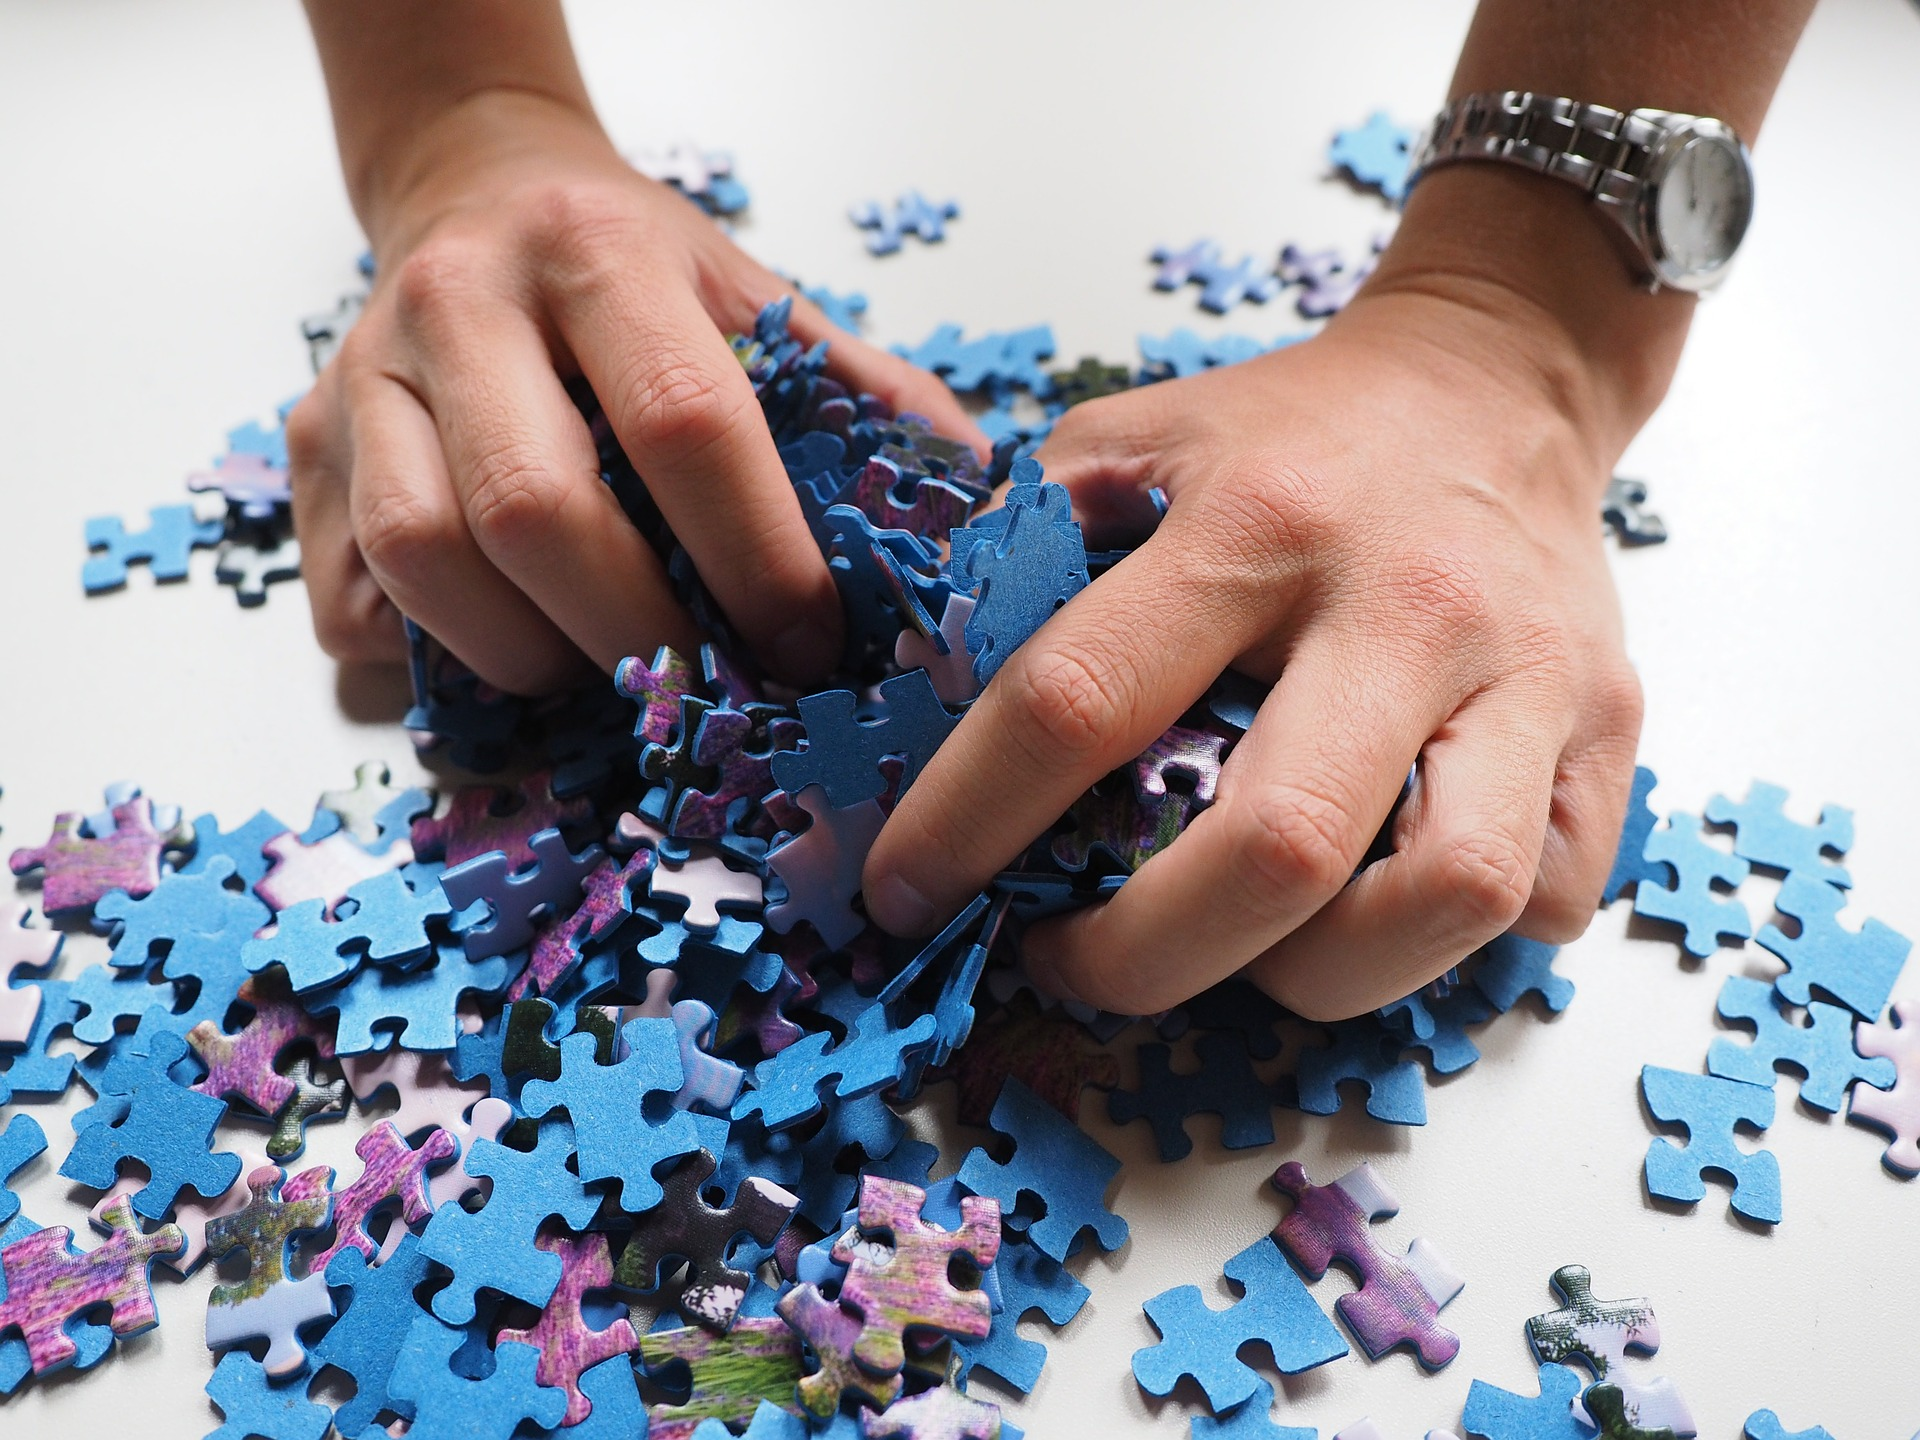 Digital Lending: The missing piece of puzzle